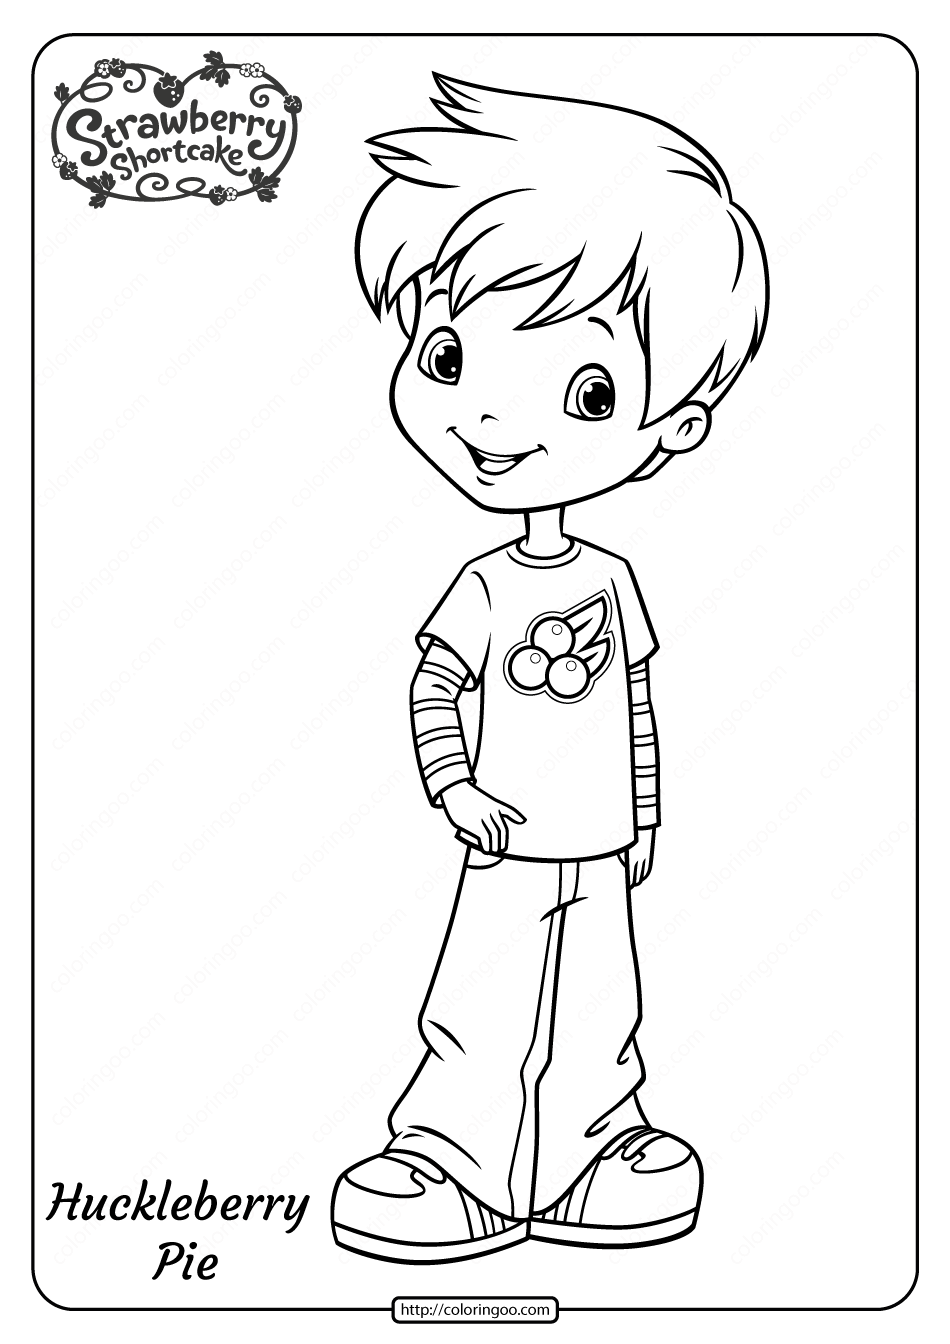 Free Printable Huckleberry Pie Pdf Coloring Page